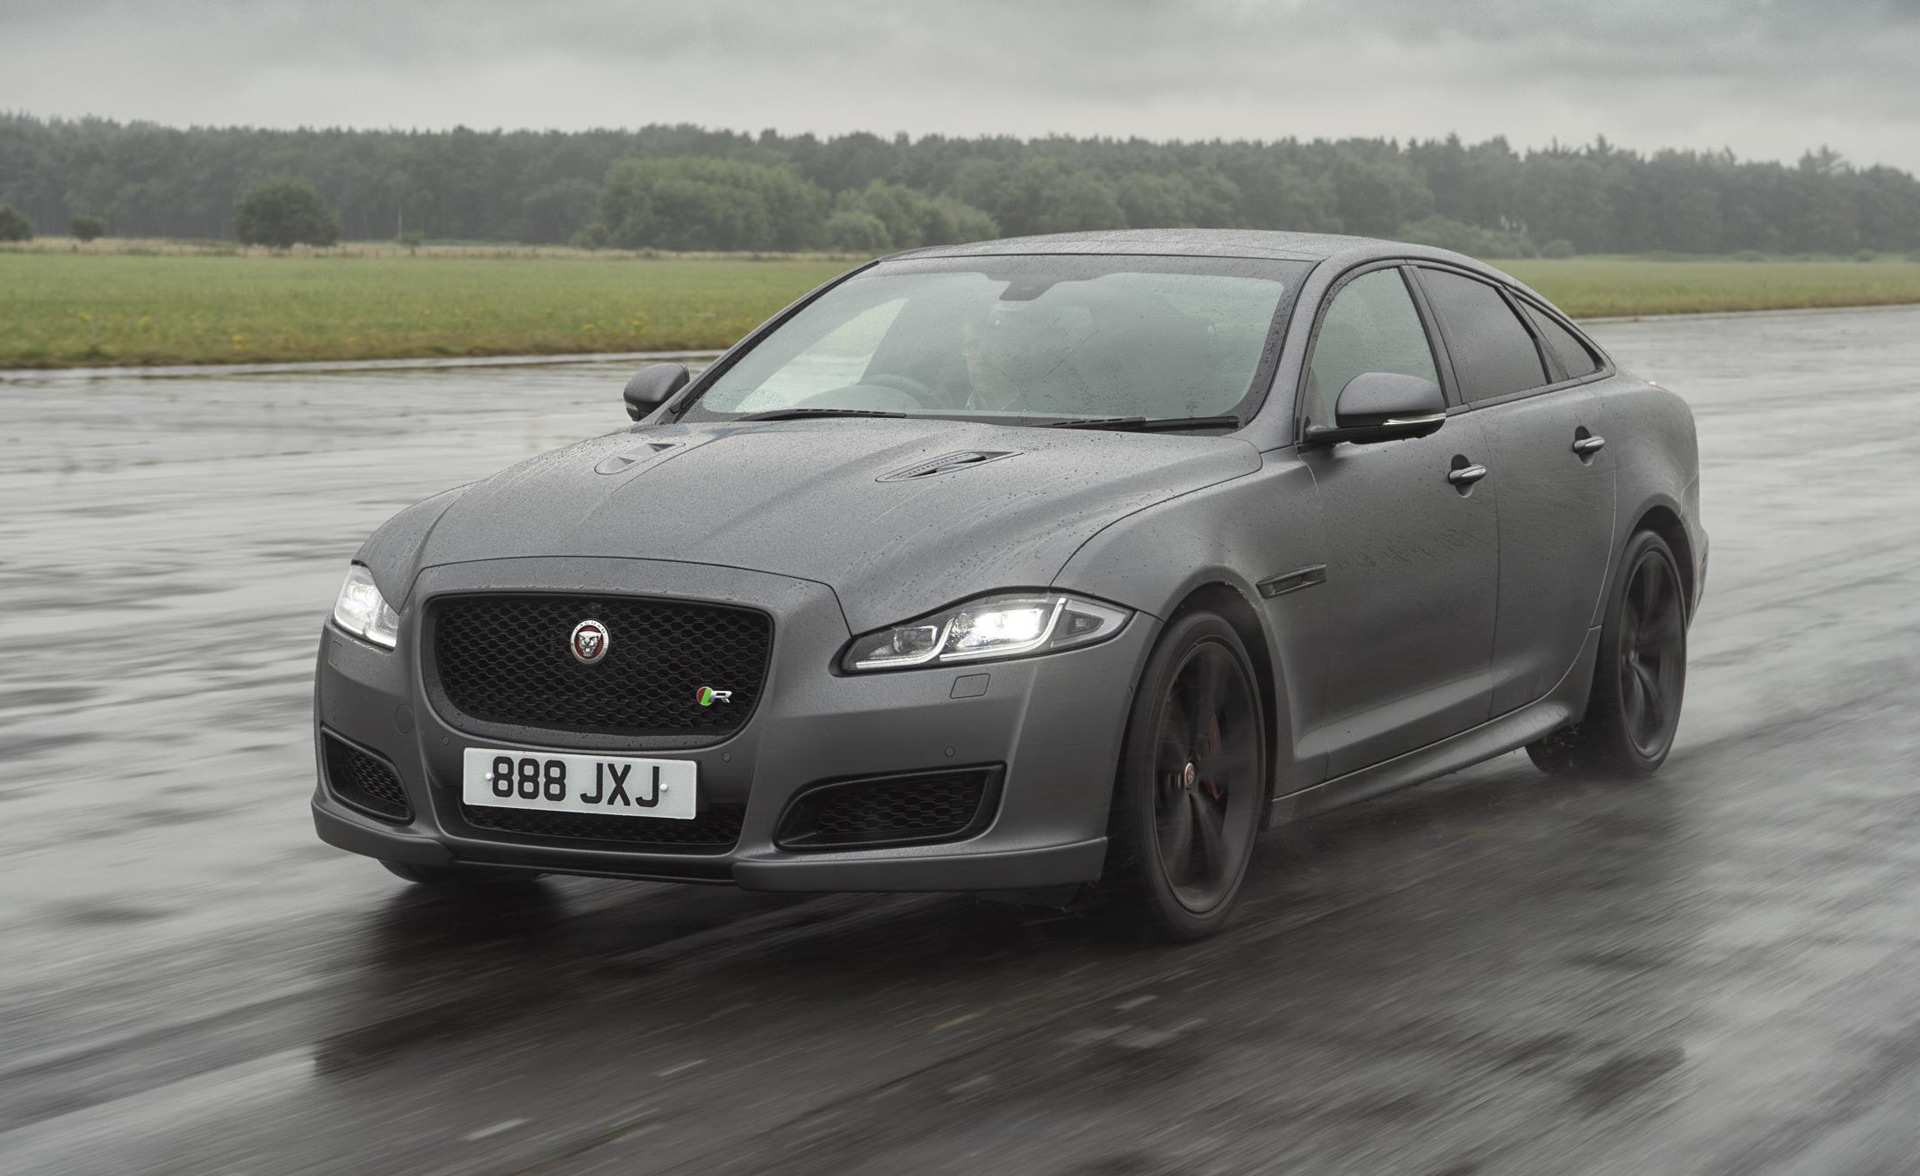 33 The 2020 Jaguar XJ Price And Review